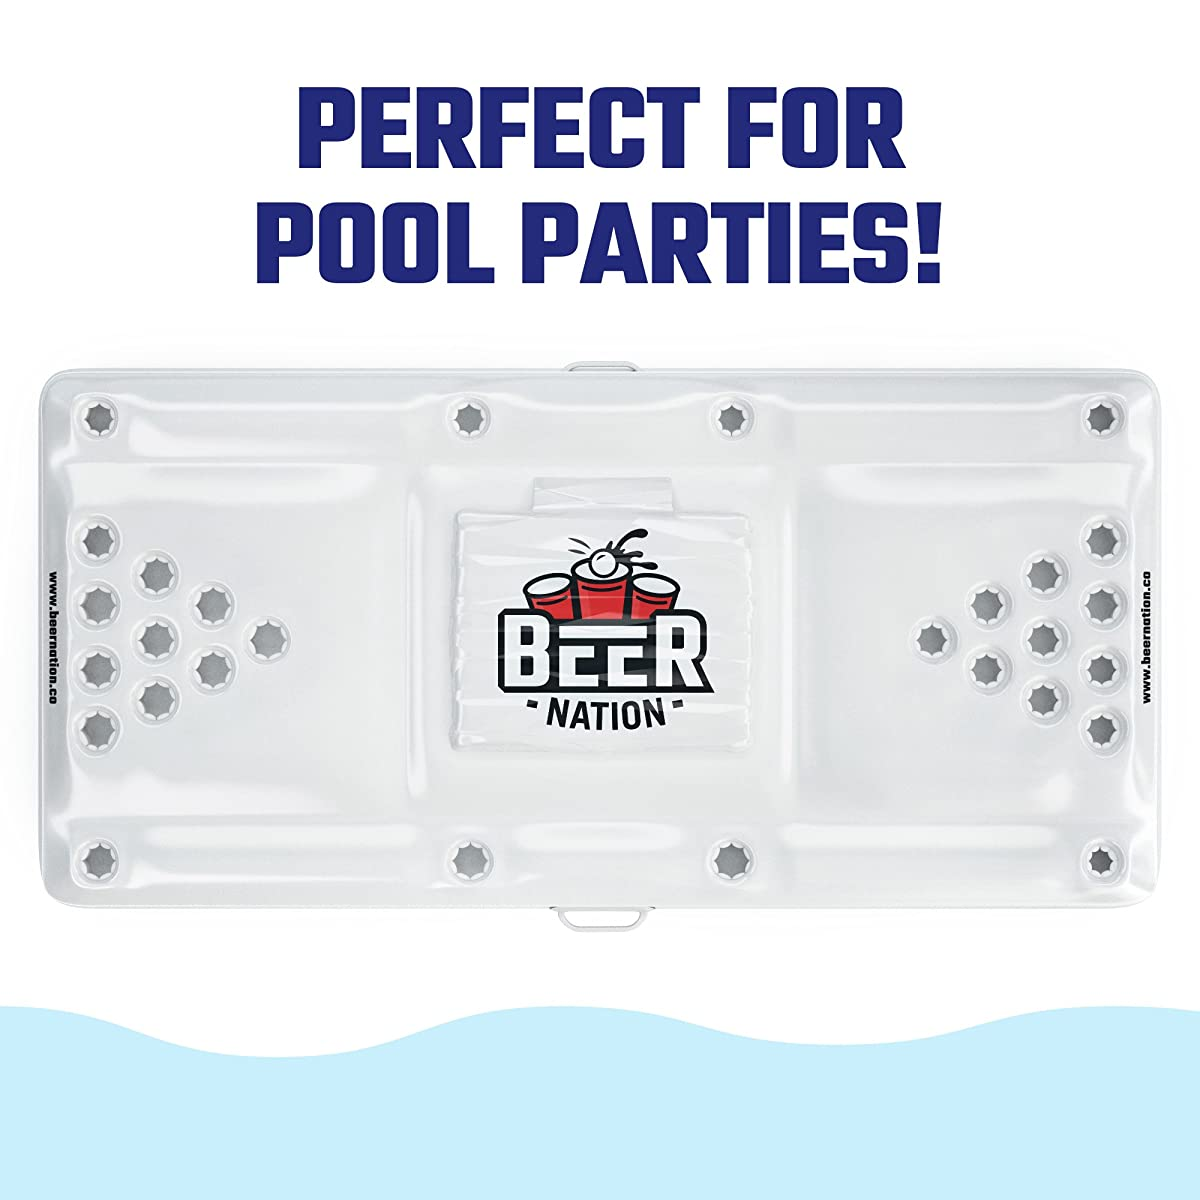 Beer Nation Inflatable Beer Pong Table with Cooler - Pool Beer Pong Pool Party Game - Floating Pong Table